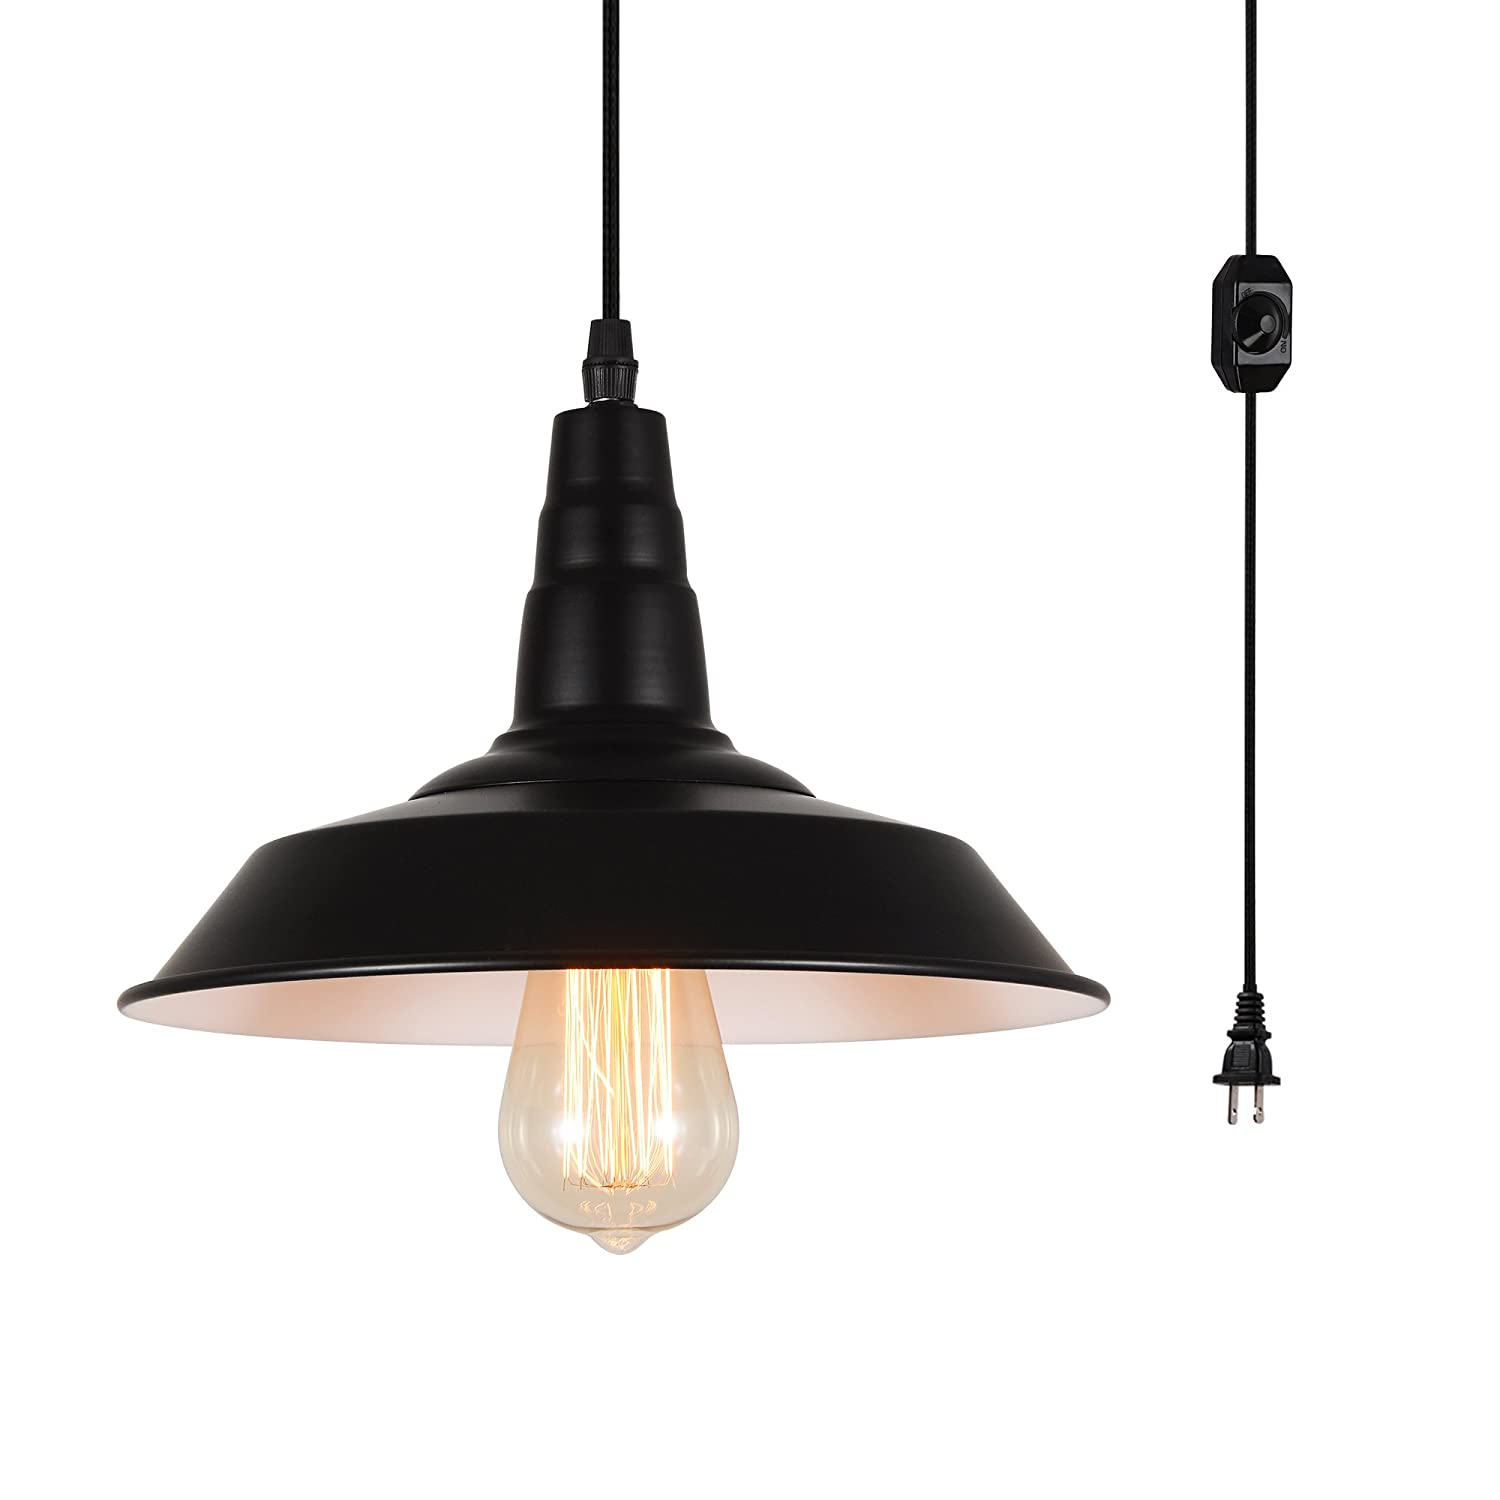 Hmvpl industrial plug in pendant lighting fixtures farmhouse hanging chandelier with long hanging cord and dimmer switch vintage black swag island lamp